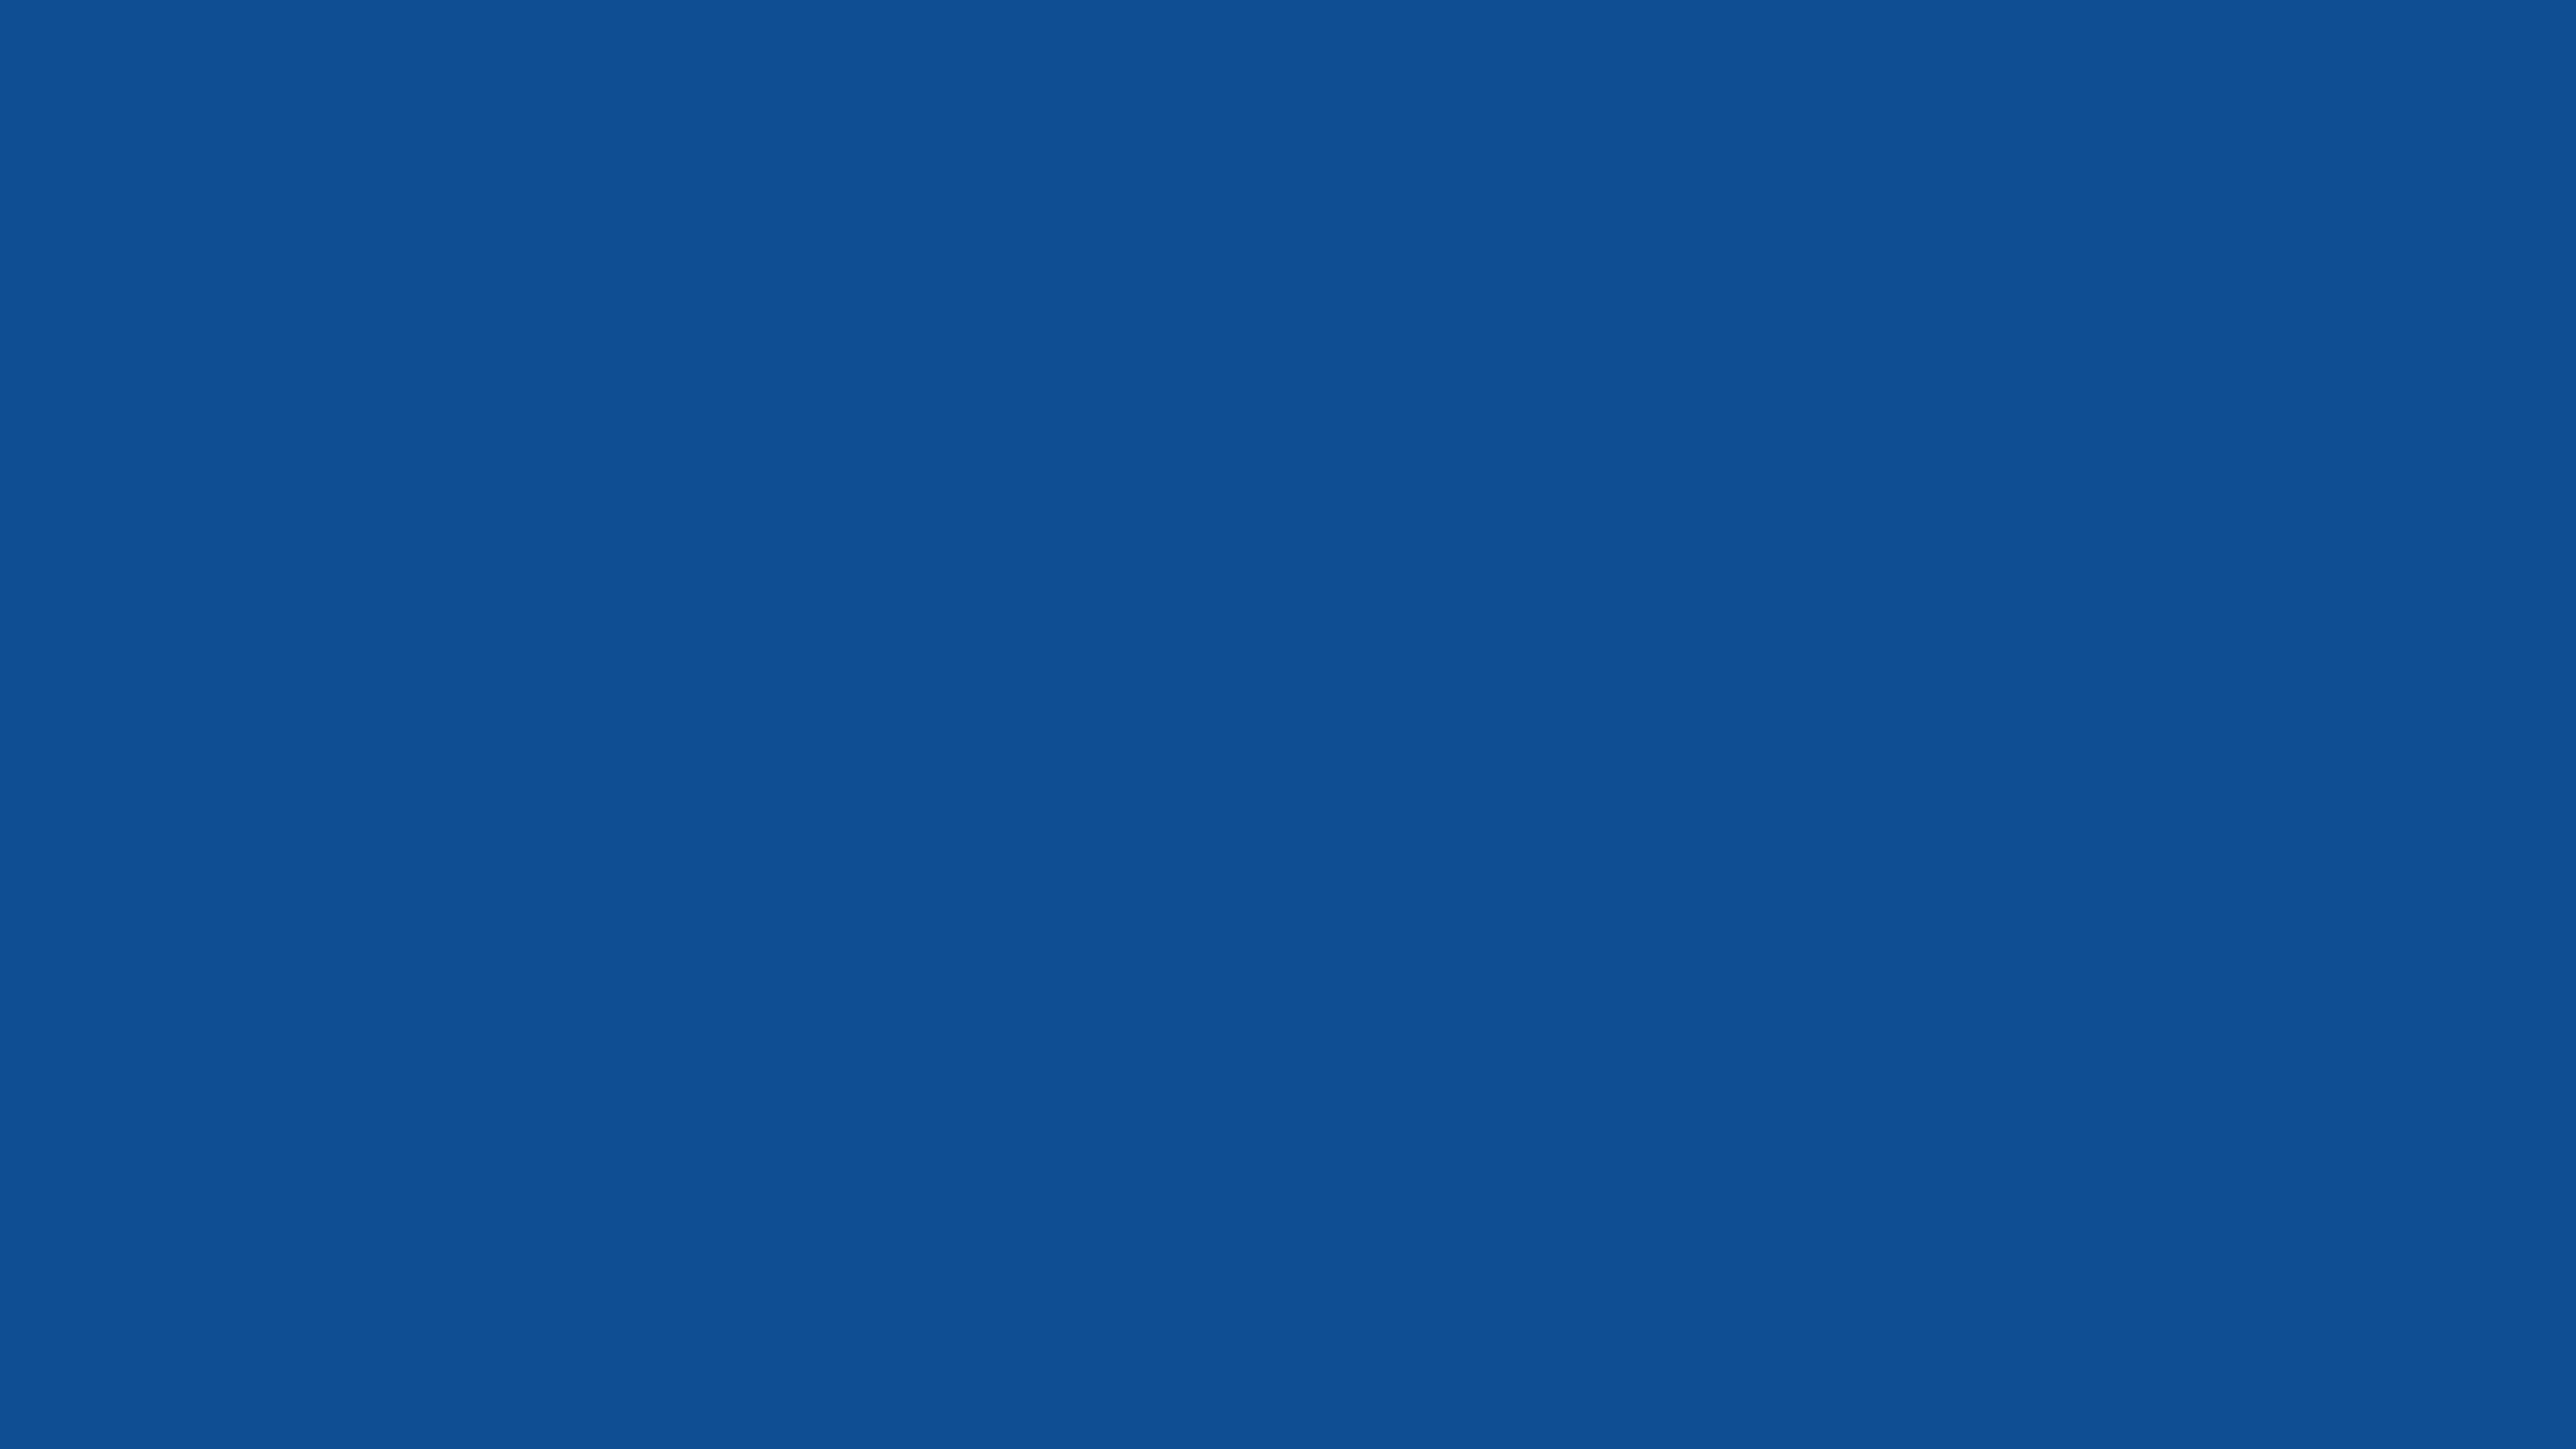 4096x2304 Yale Blue Solid Color Background